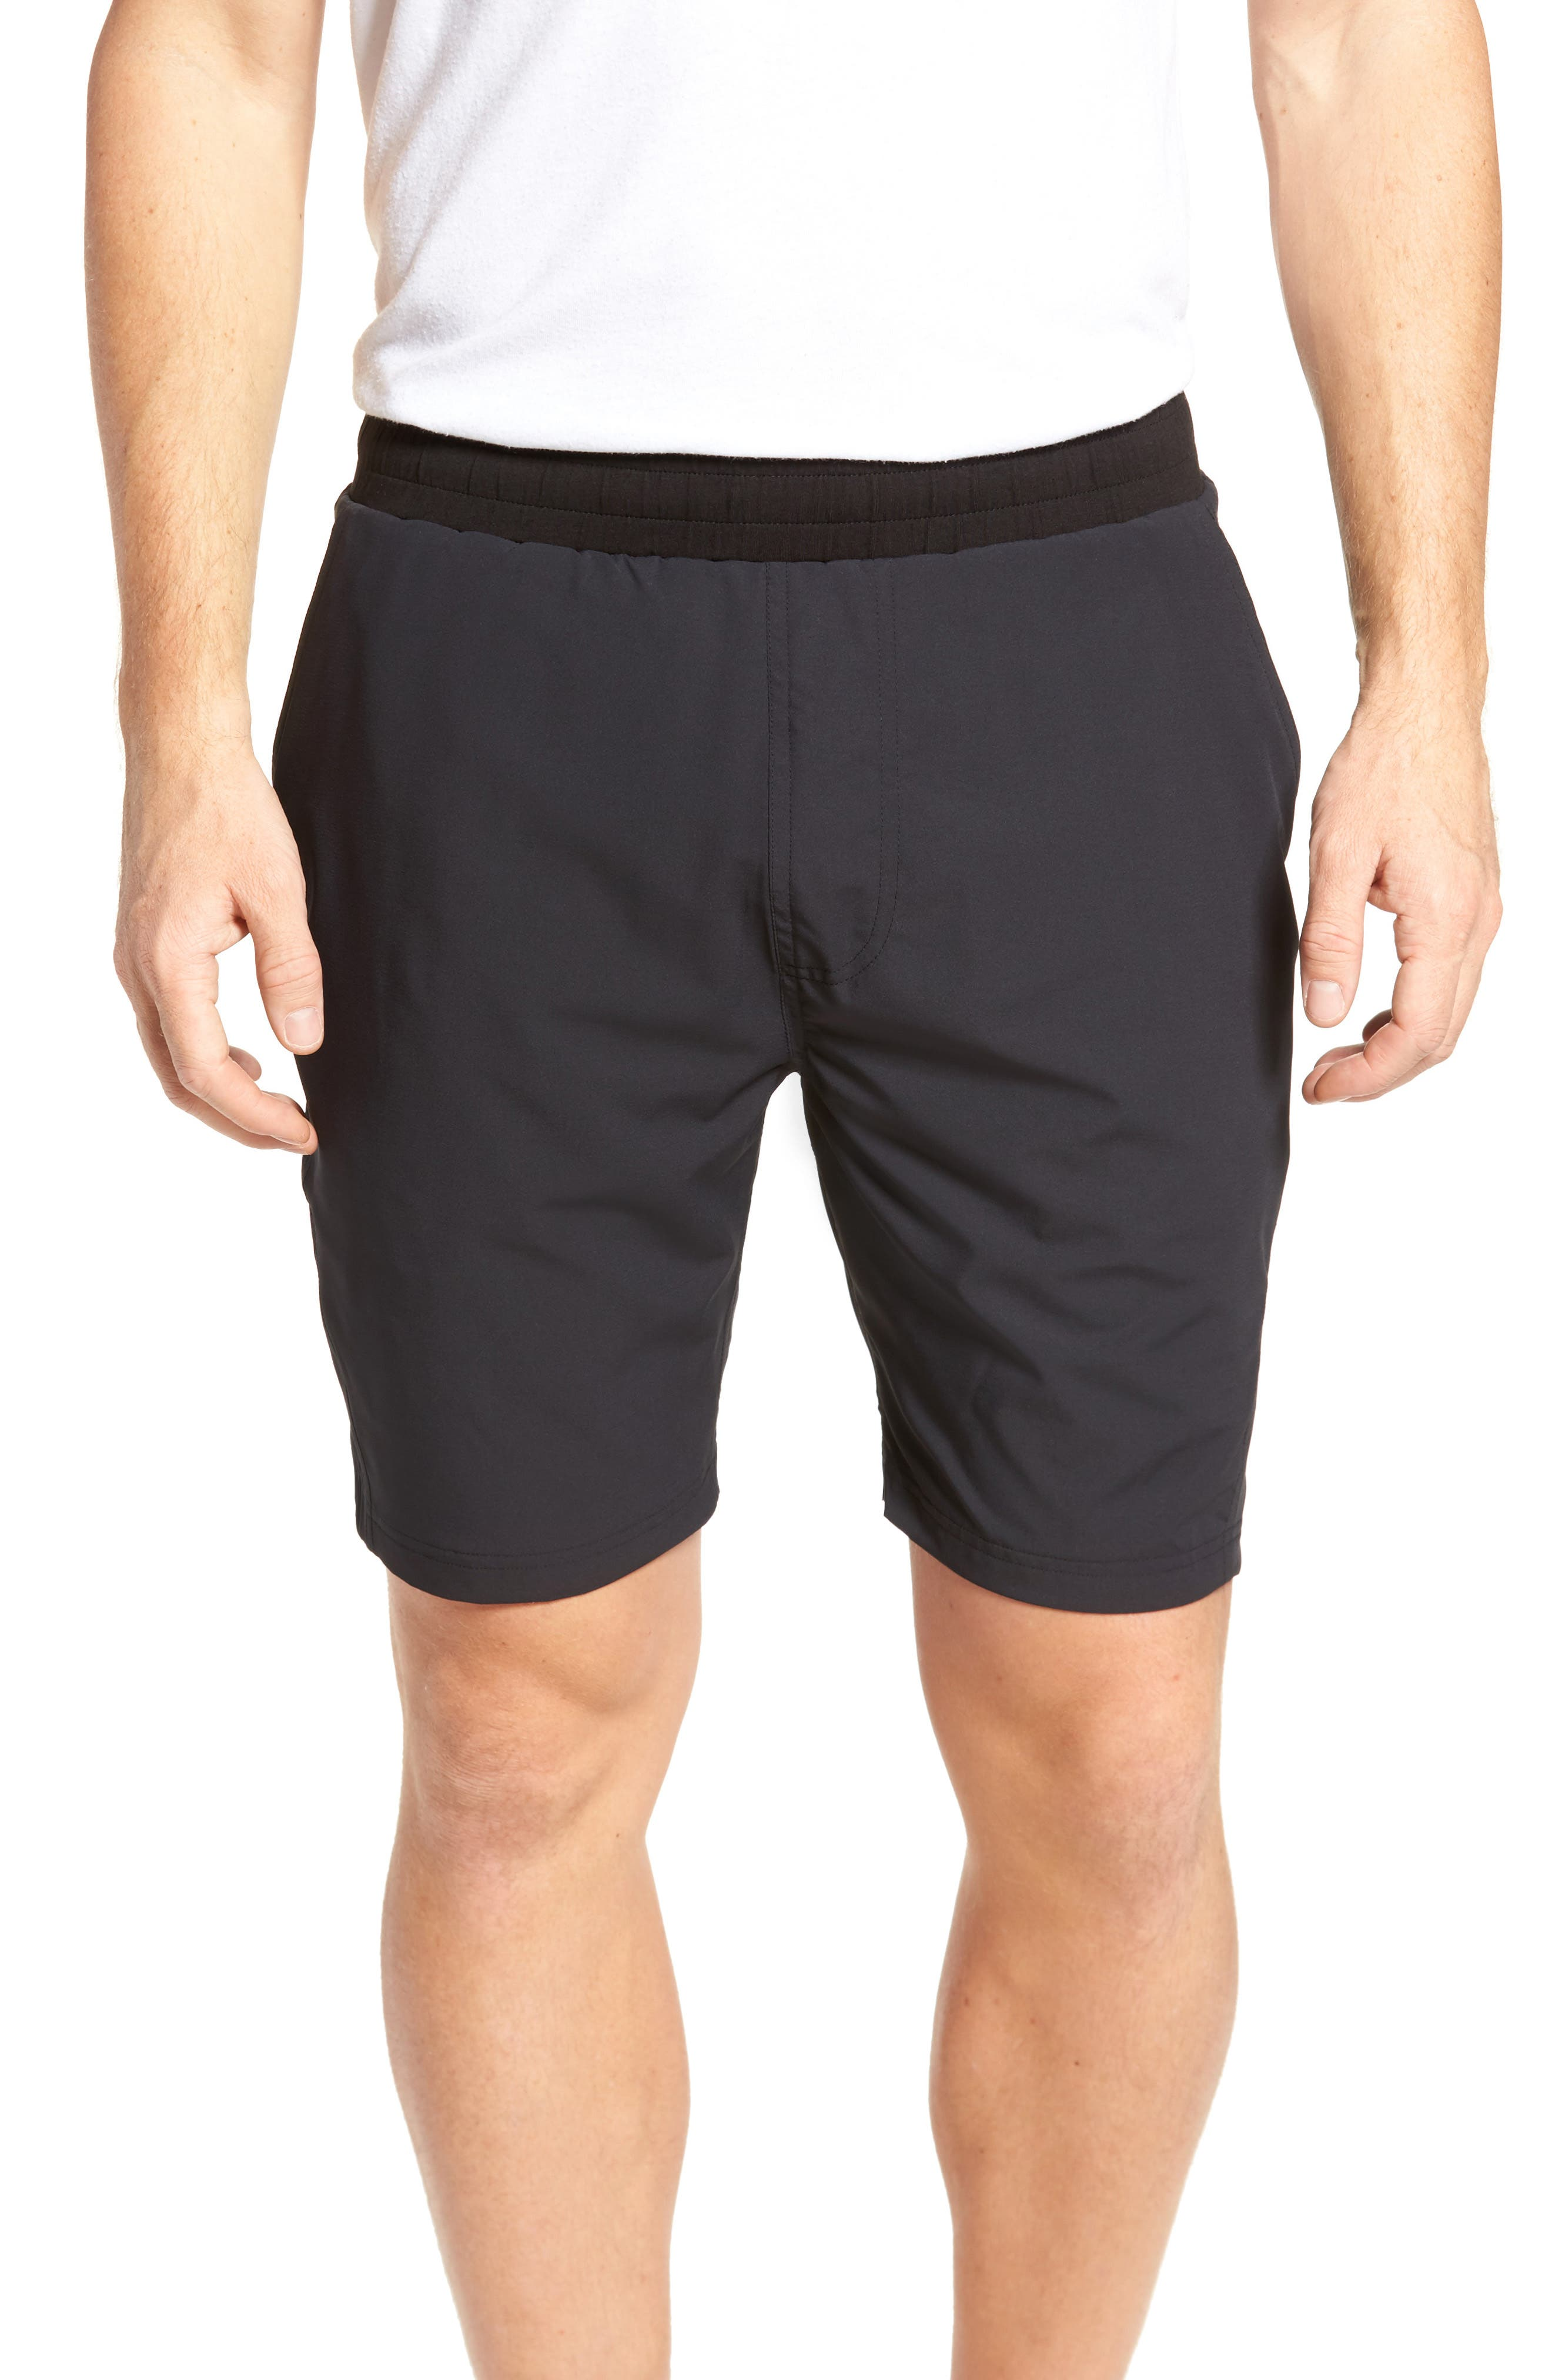 TASC PERFORMANCE Charge Water Resistant Athletic Shorts, Main, color, BLACK